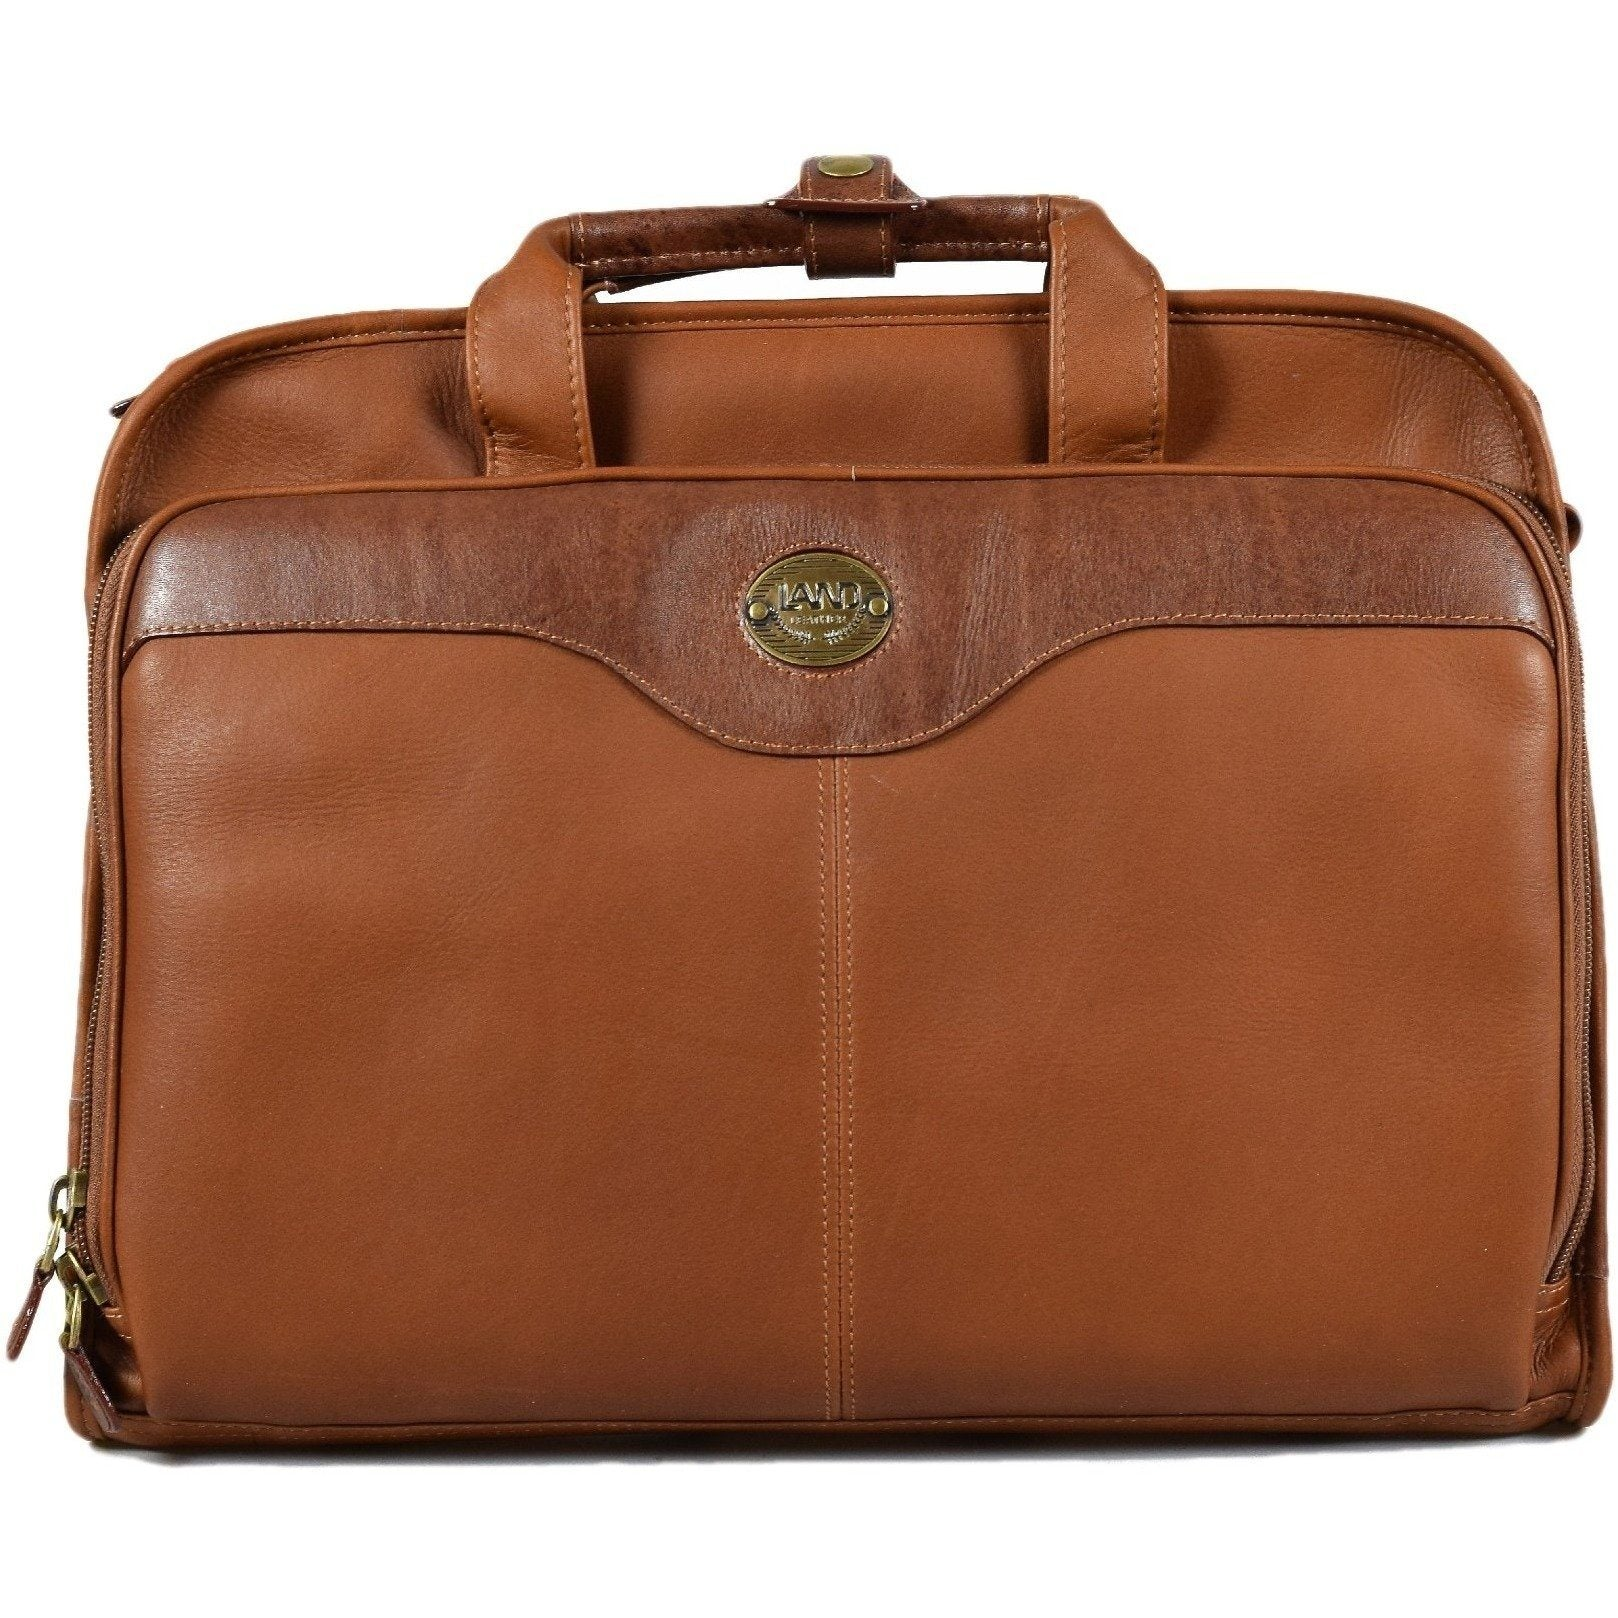 Santa Fe Slim Day Brief, Briefcase | LAND Leather